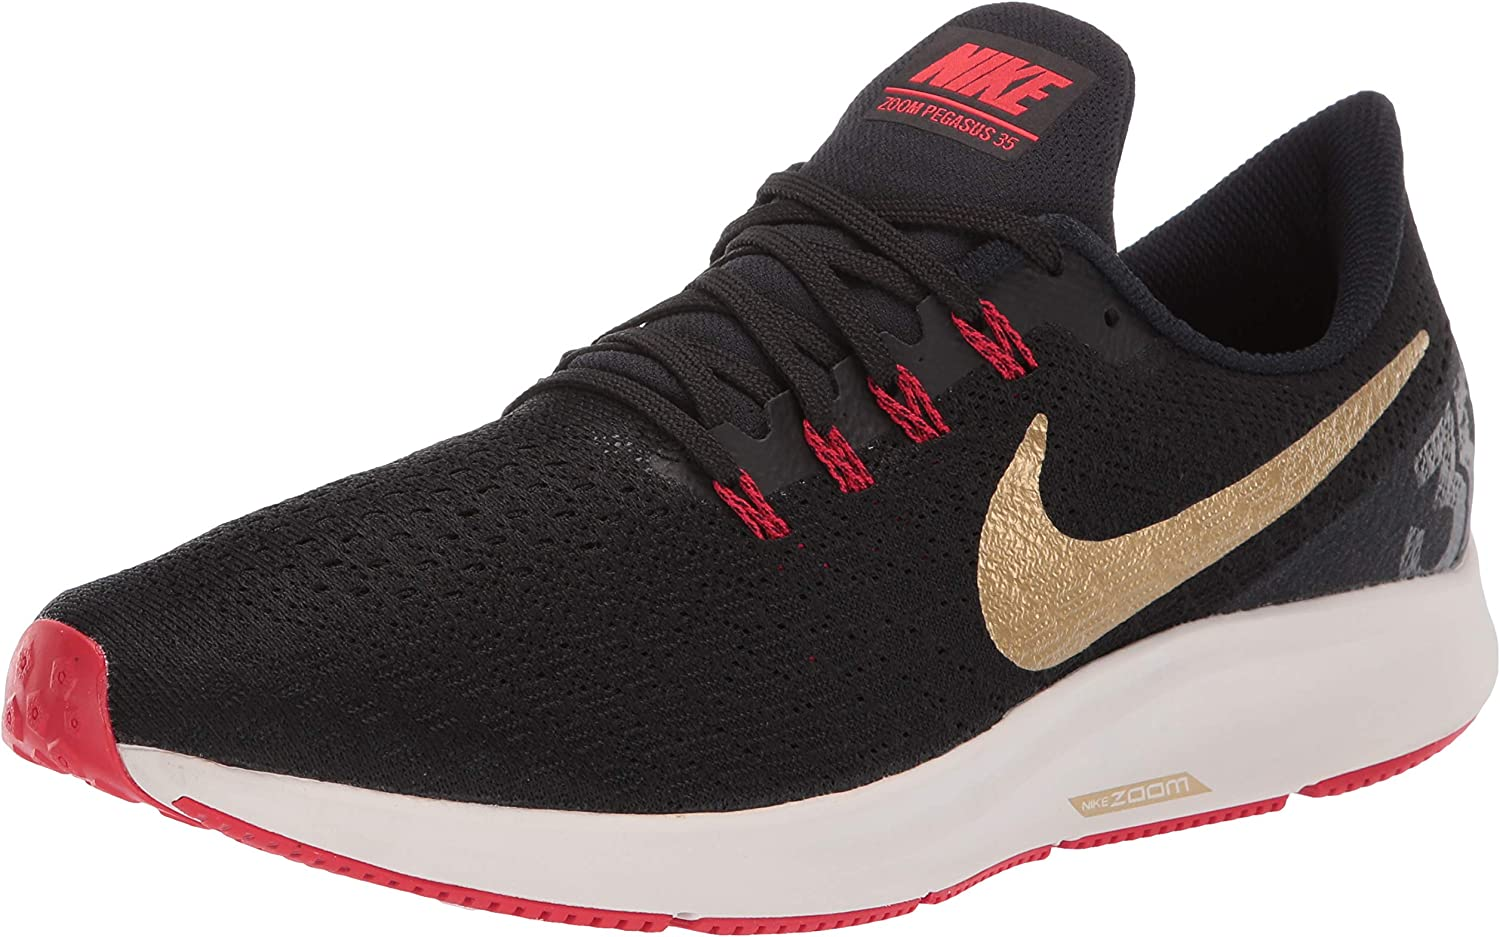 Nike Air Zoom Pegasus 35 Sz 11 Mens Running Black Metallic Gold-University Red Shoes